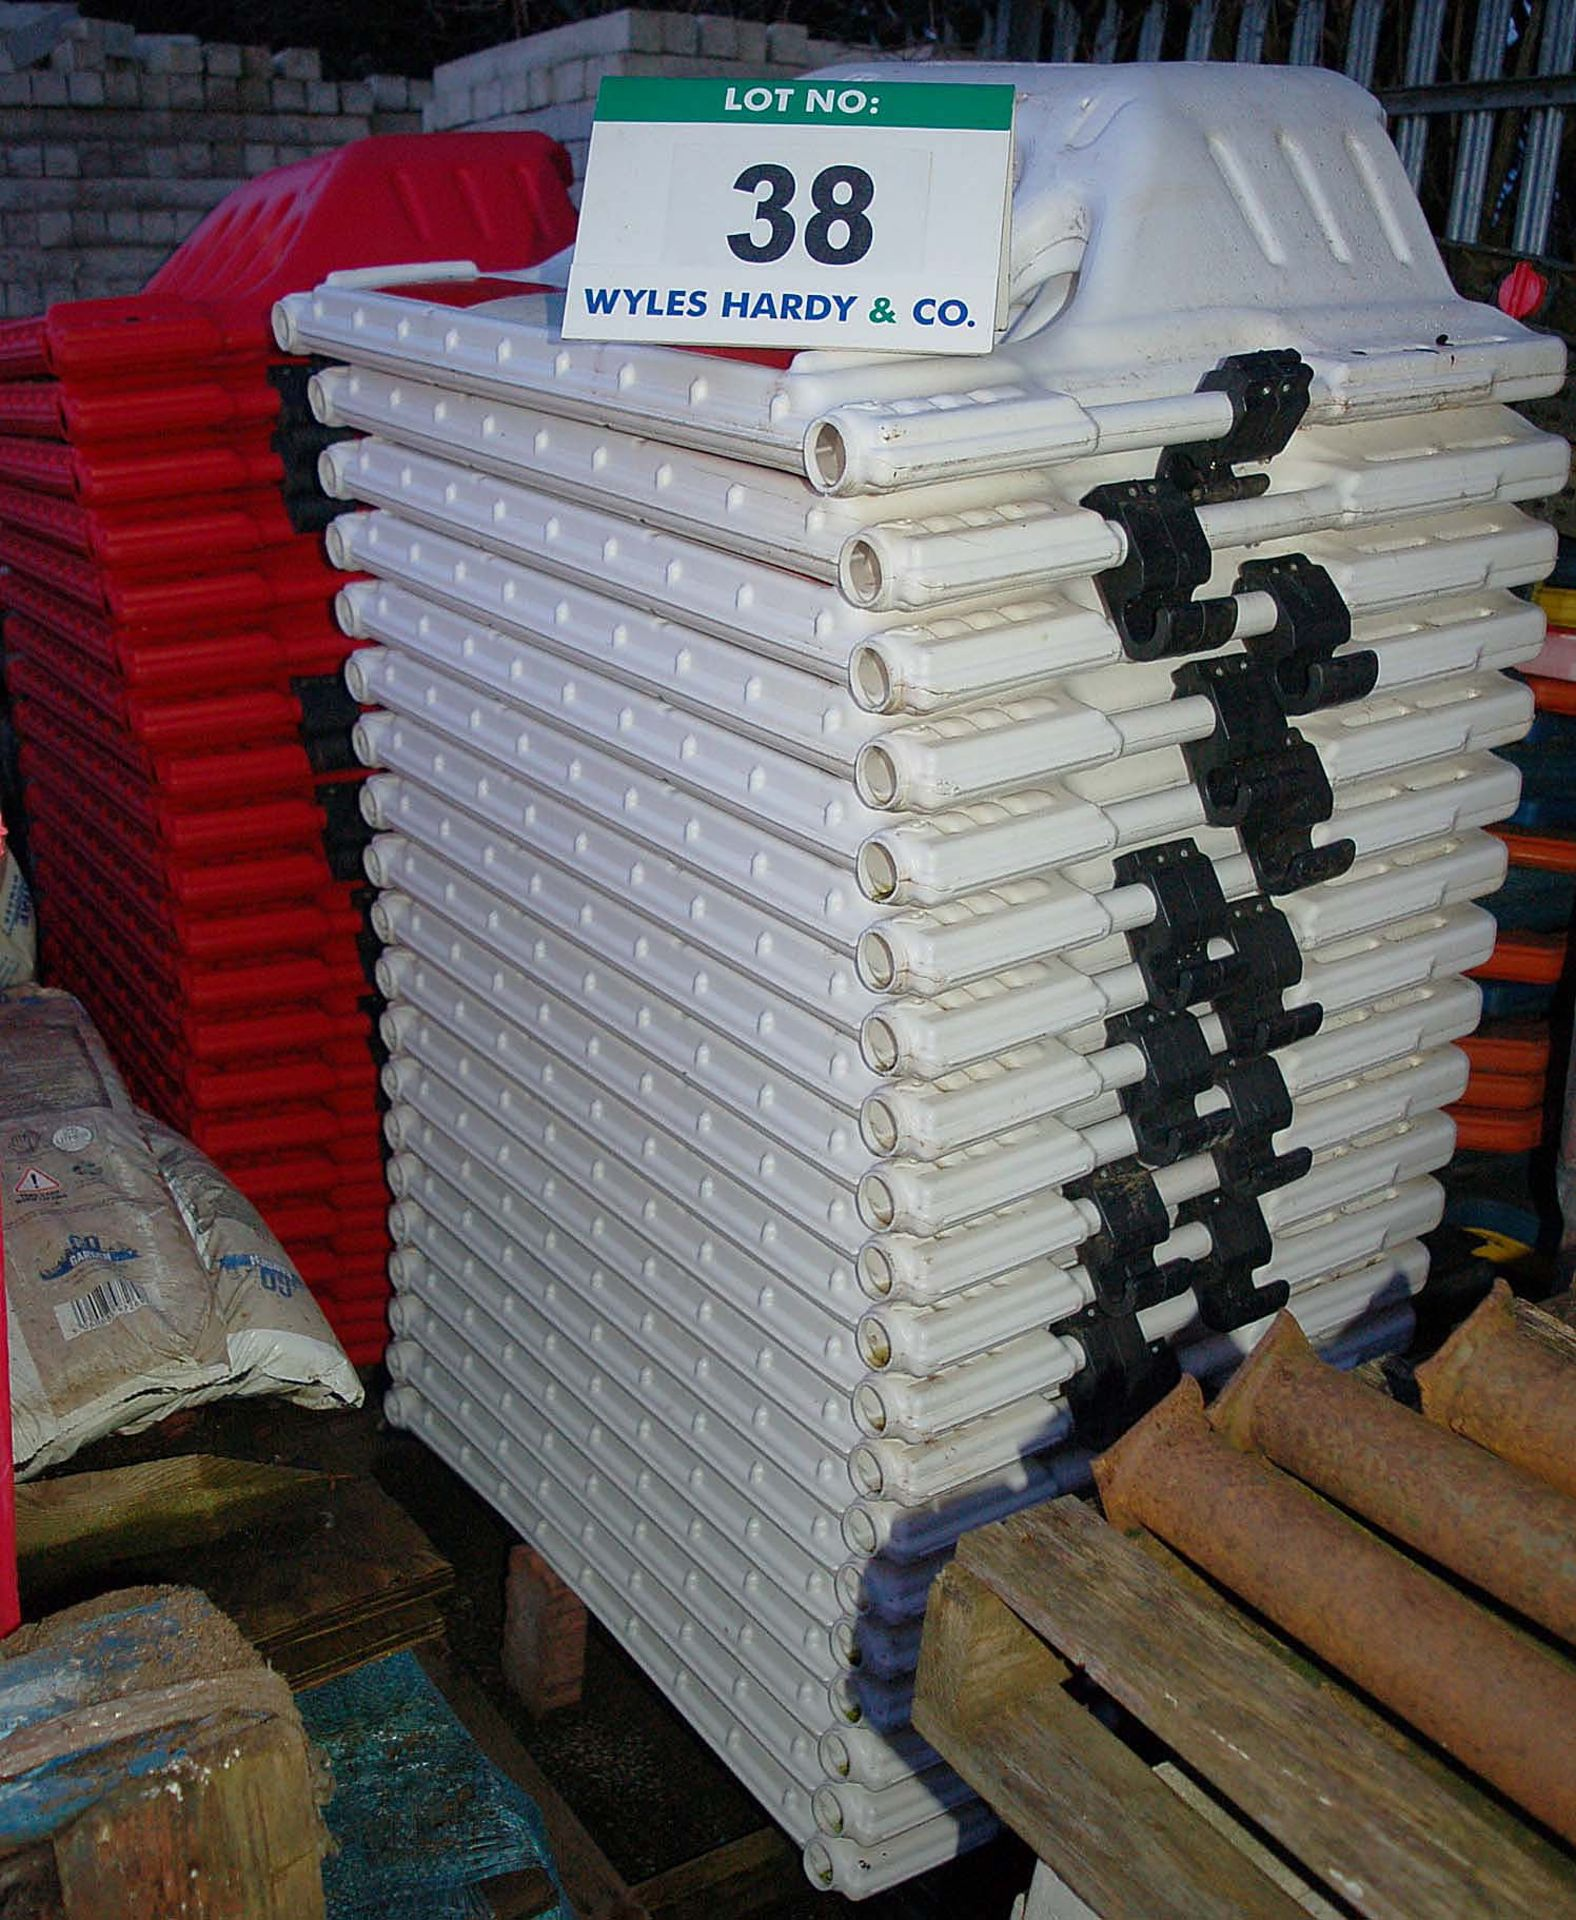 Lot 38 - 40 Moulded Plastic Pedestrian Barriers (20 x White / 20 x Red)